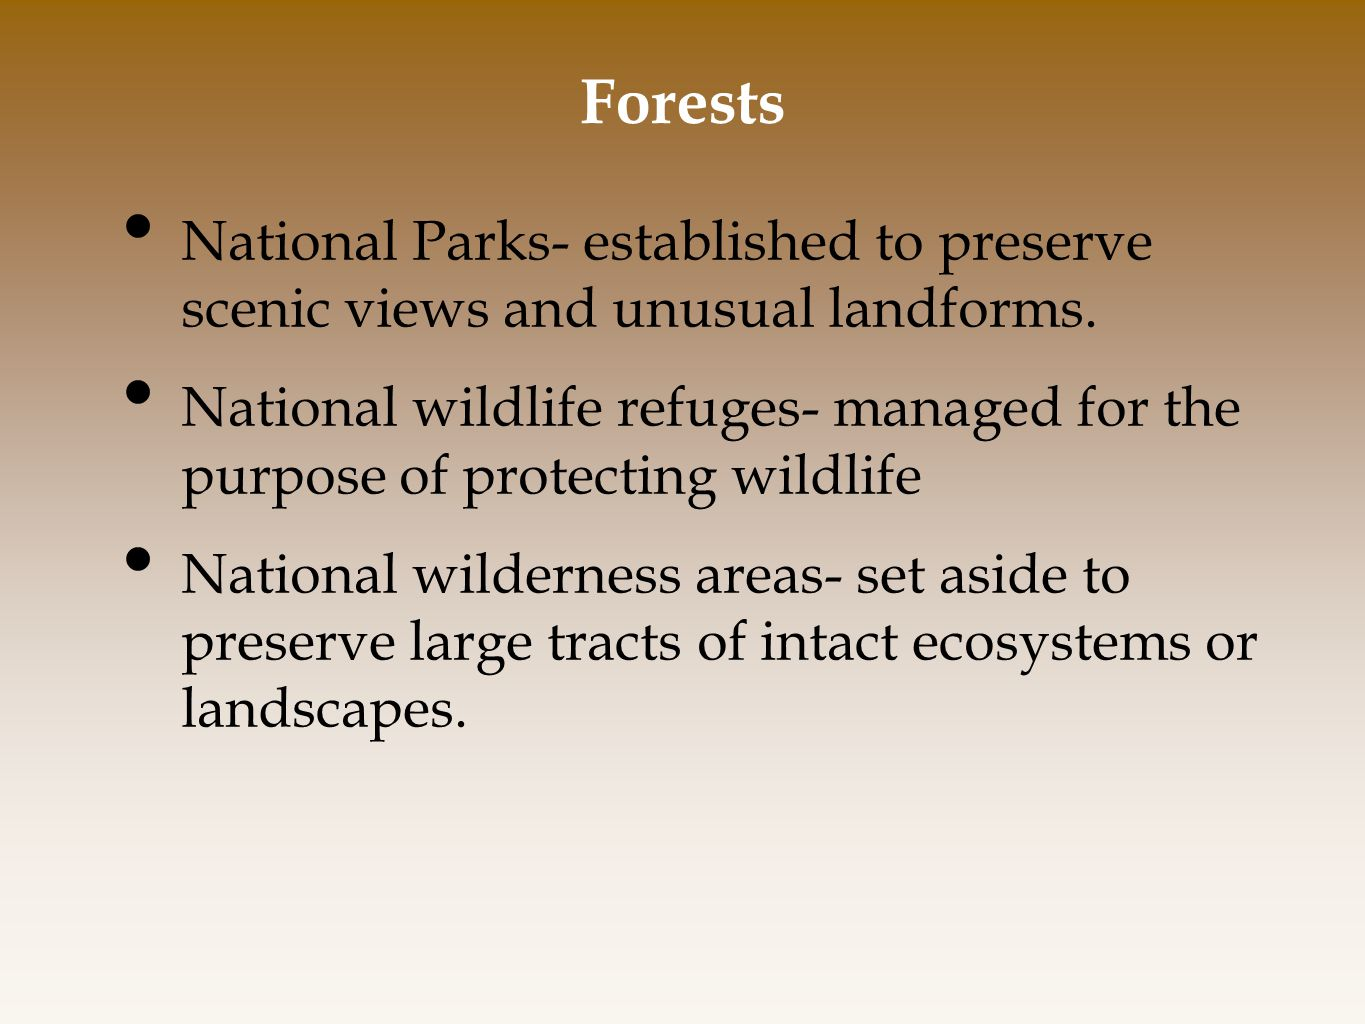 Forests National Parks- established to preserve scenic views and unusual landforms.